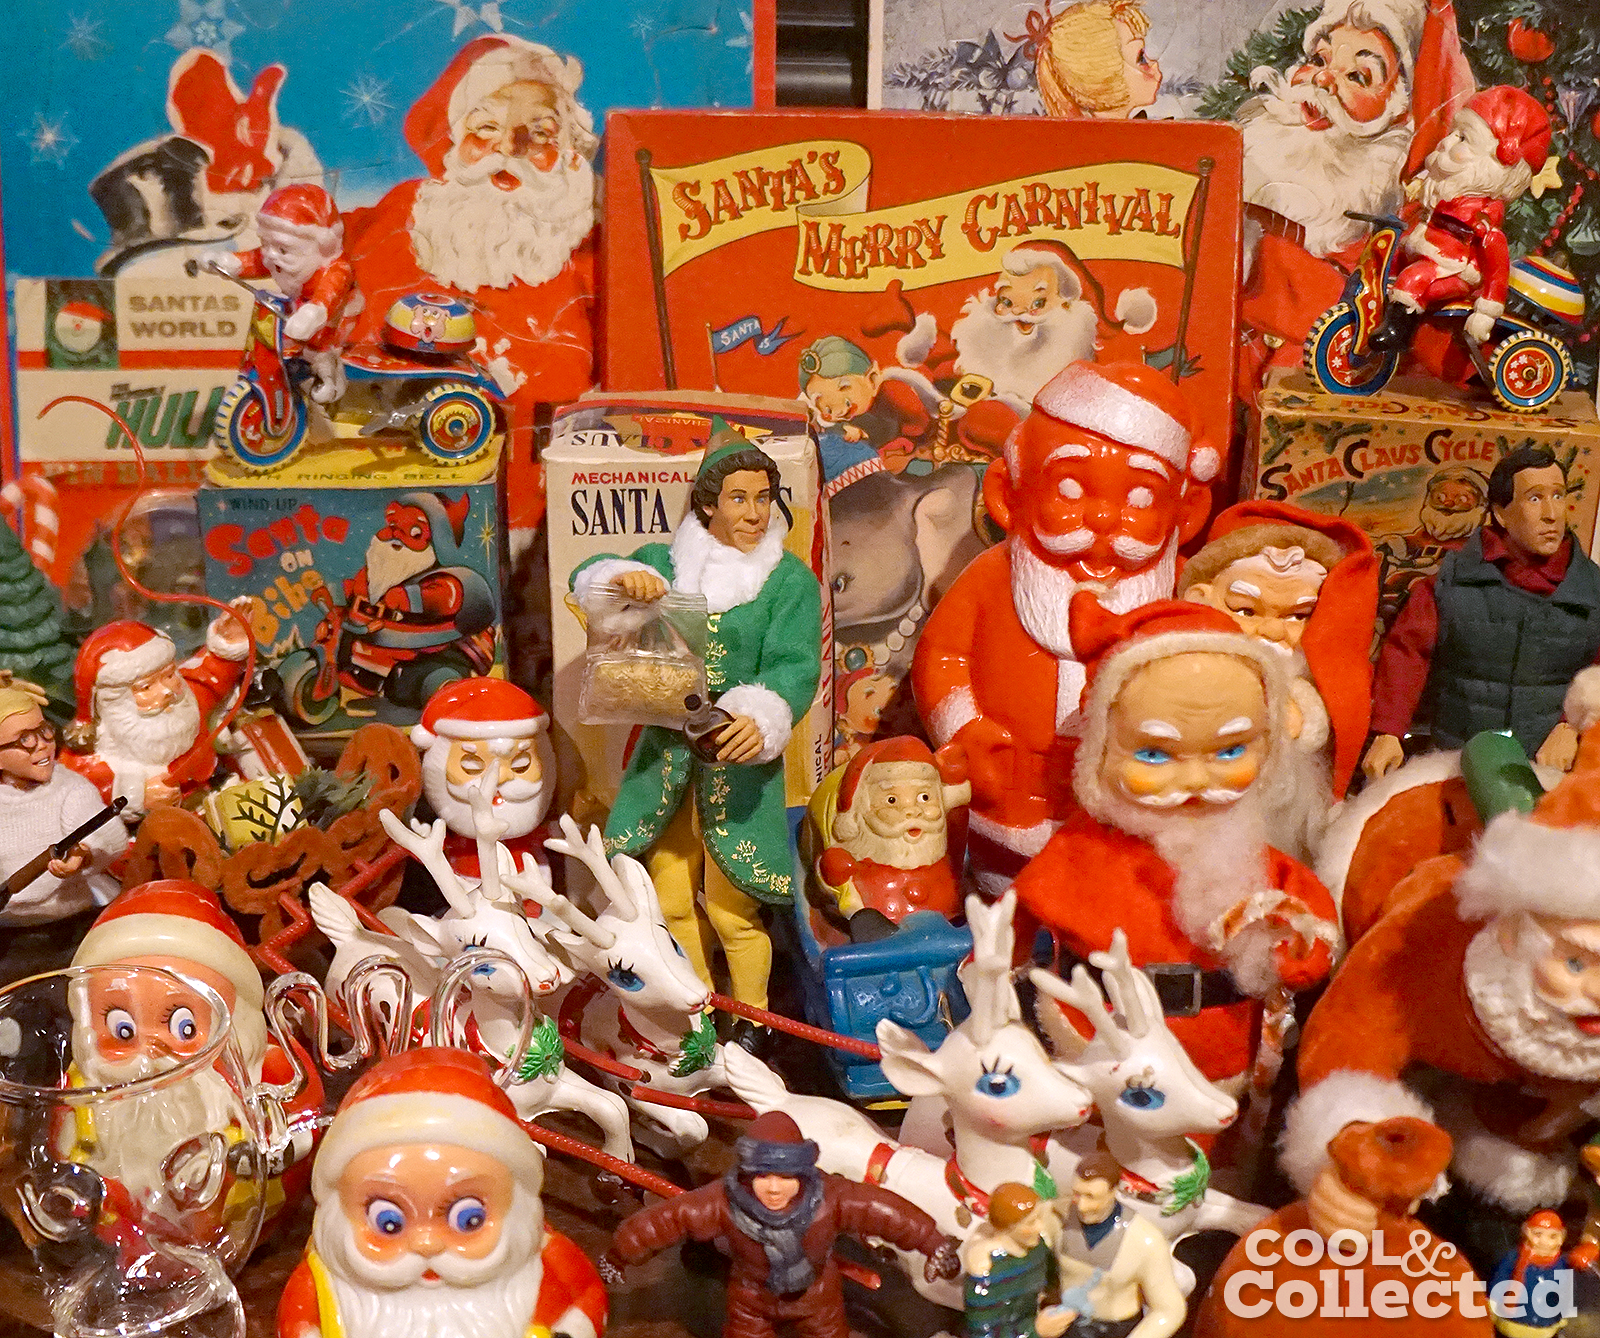 Christmas collection on display